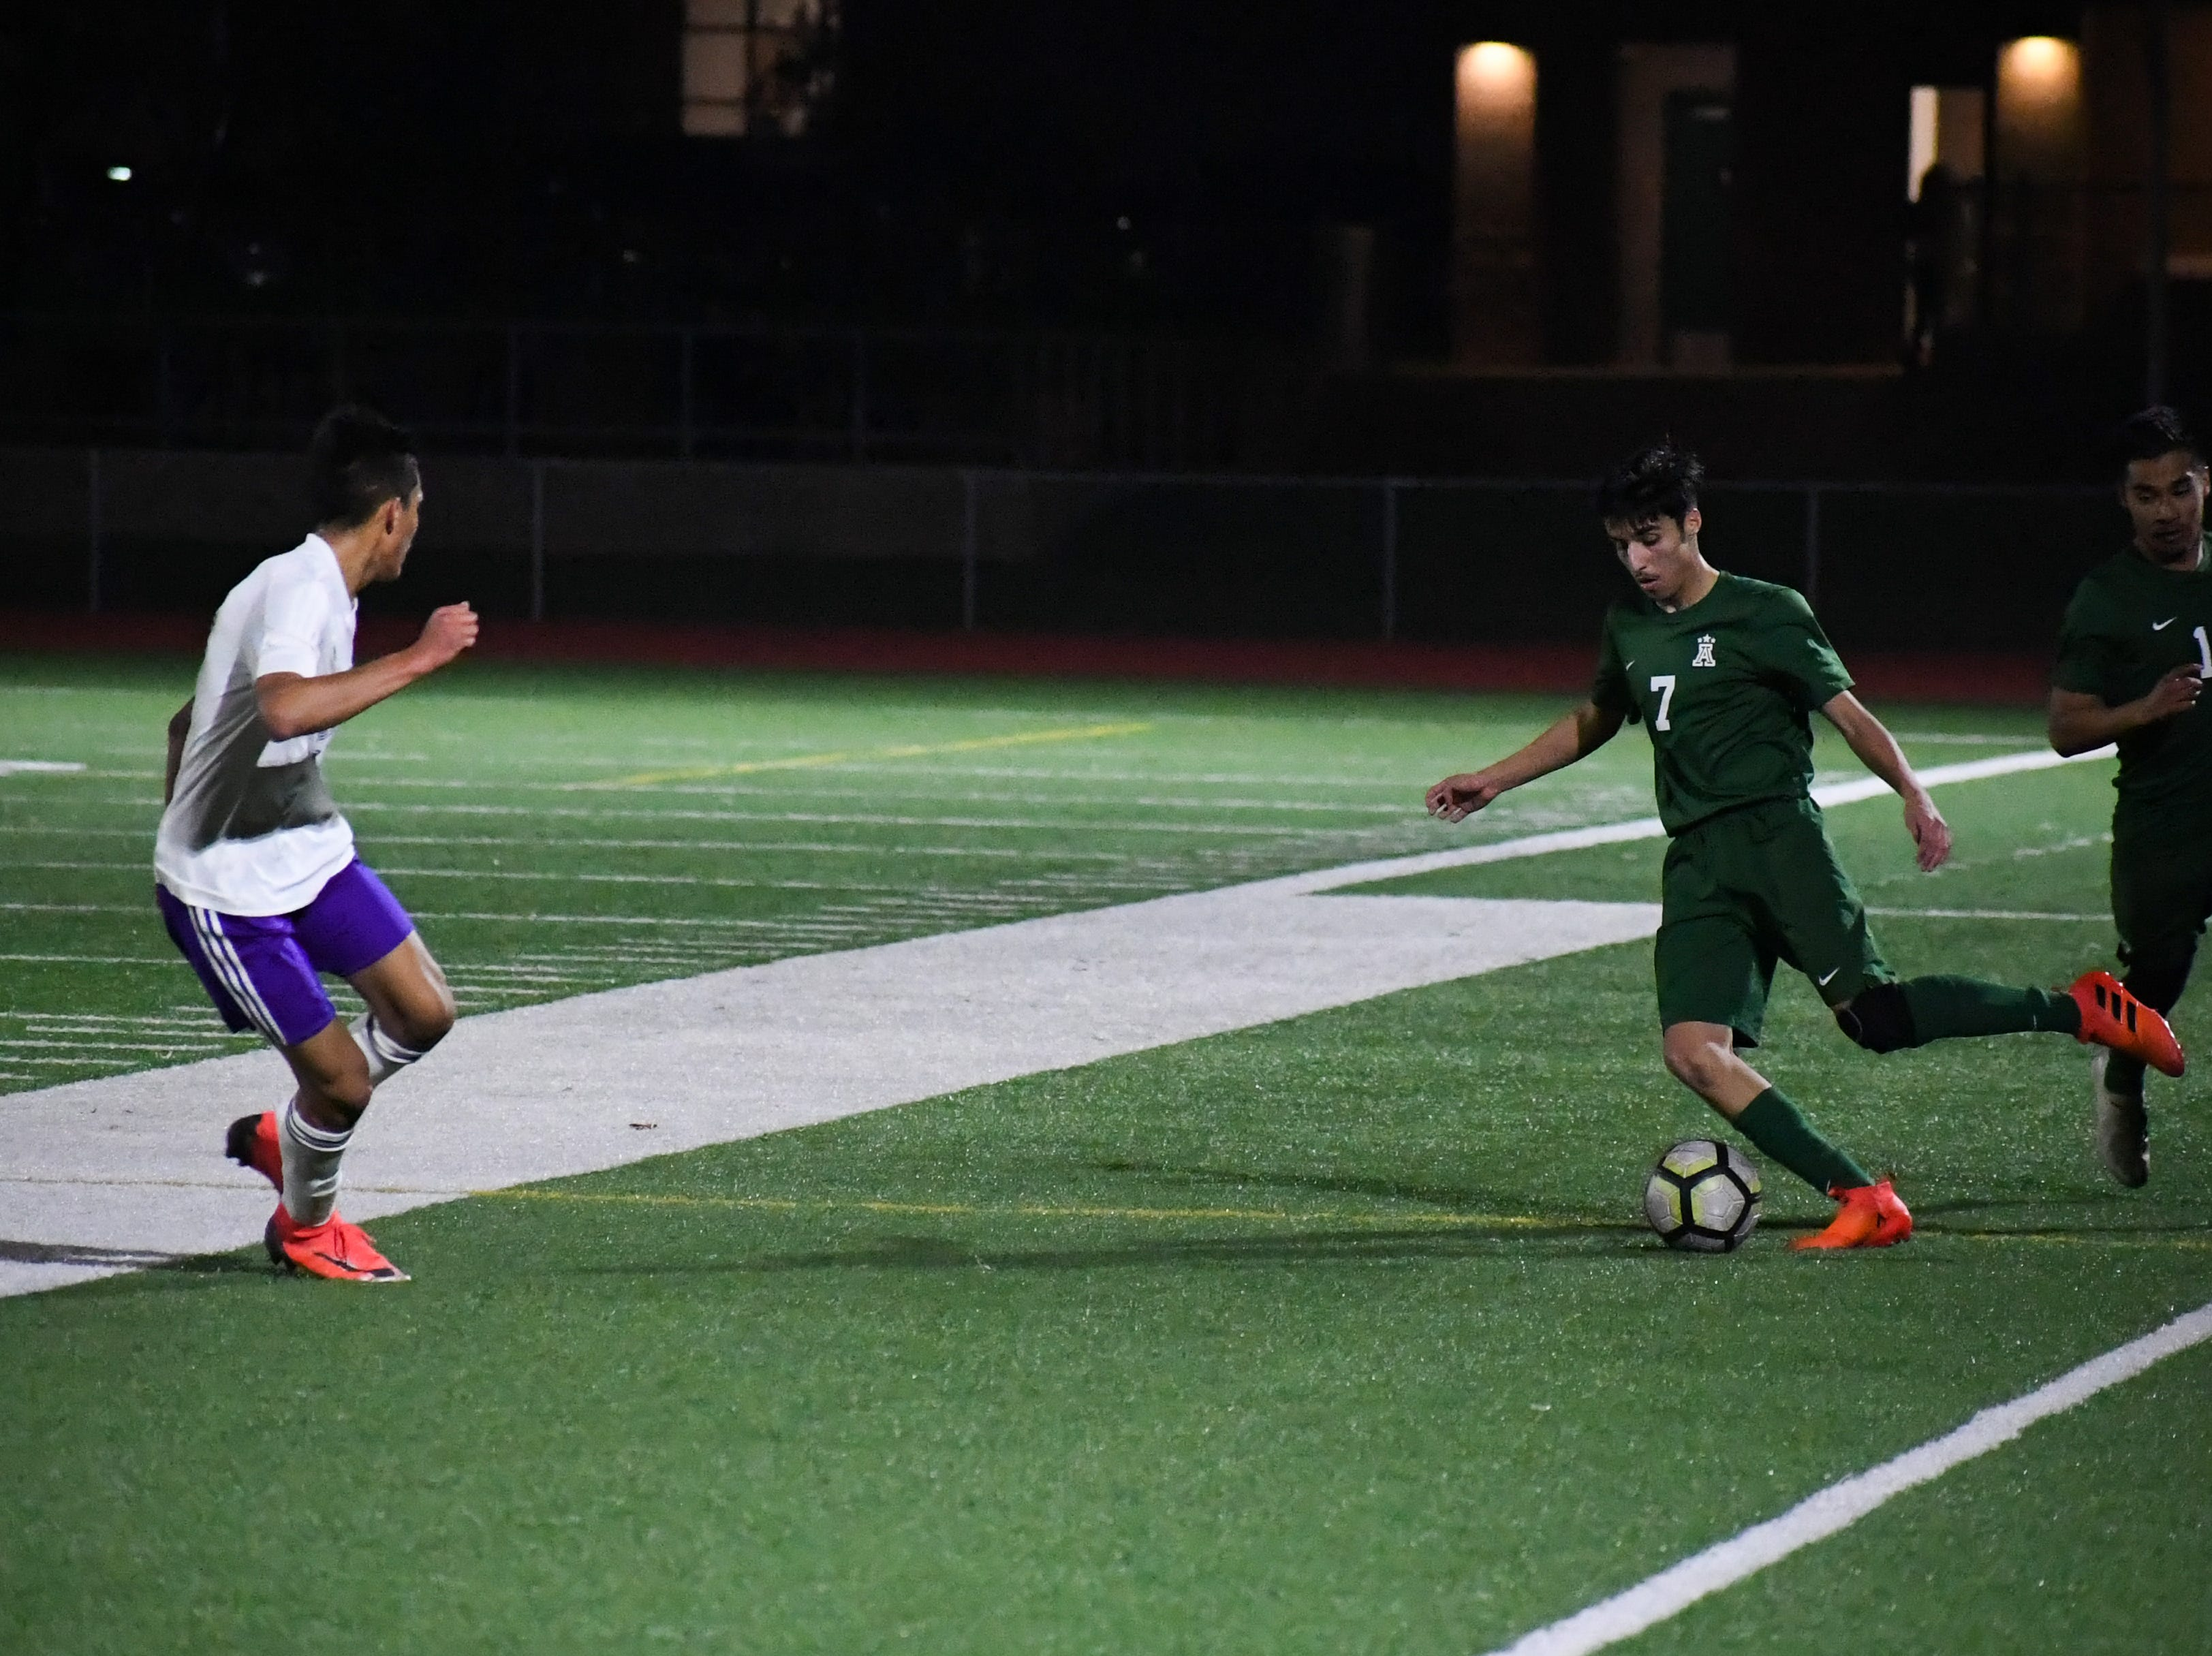 Alisal midfielder Julien Peguero (7) takes a throw-in upfield.